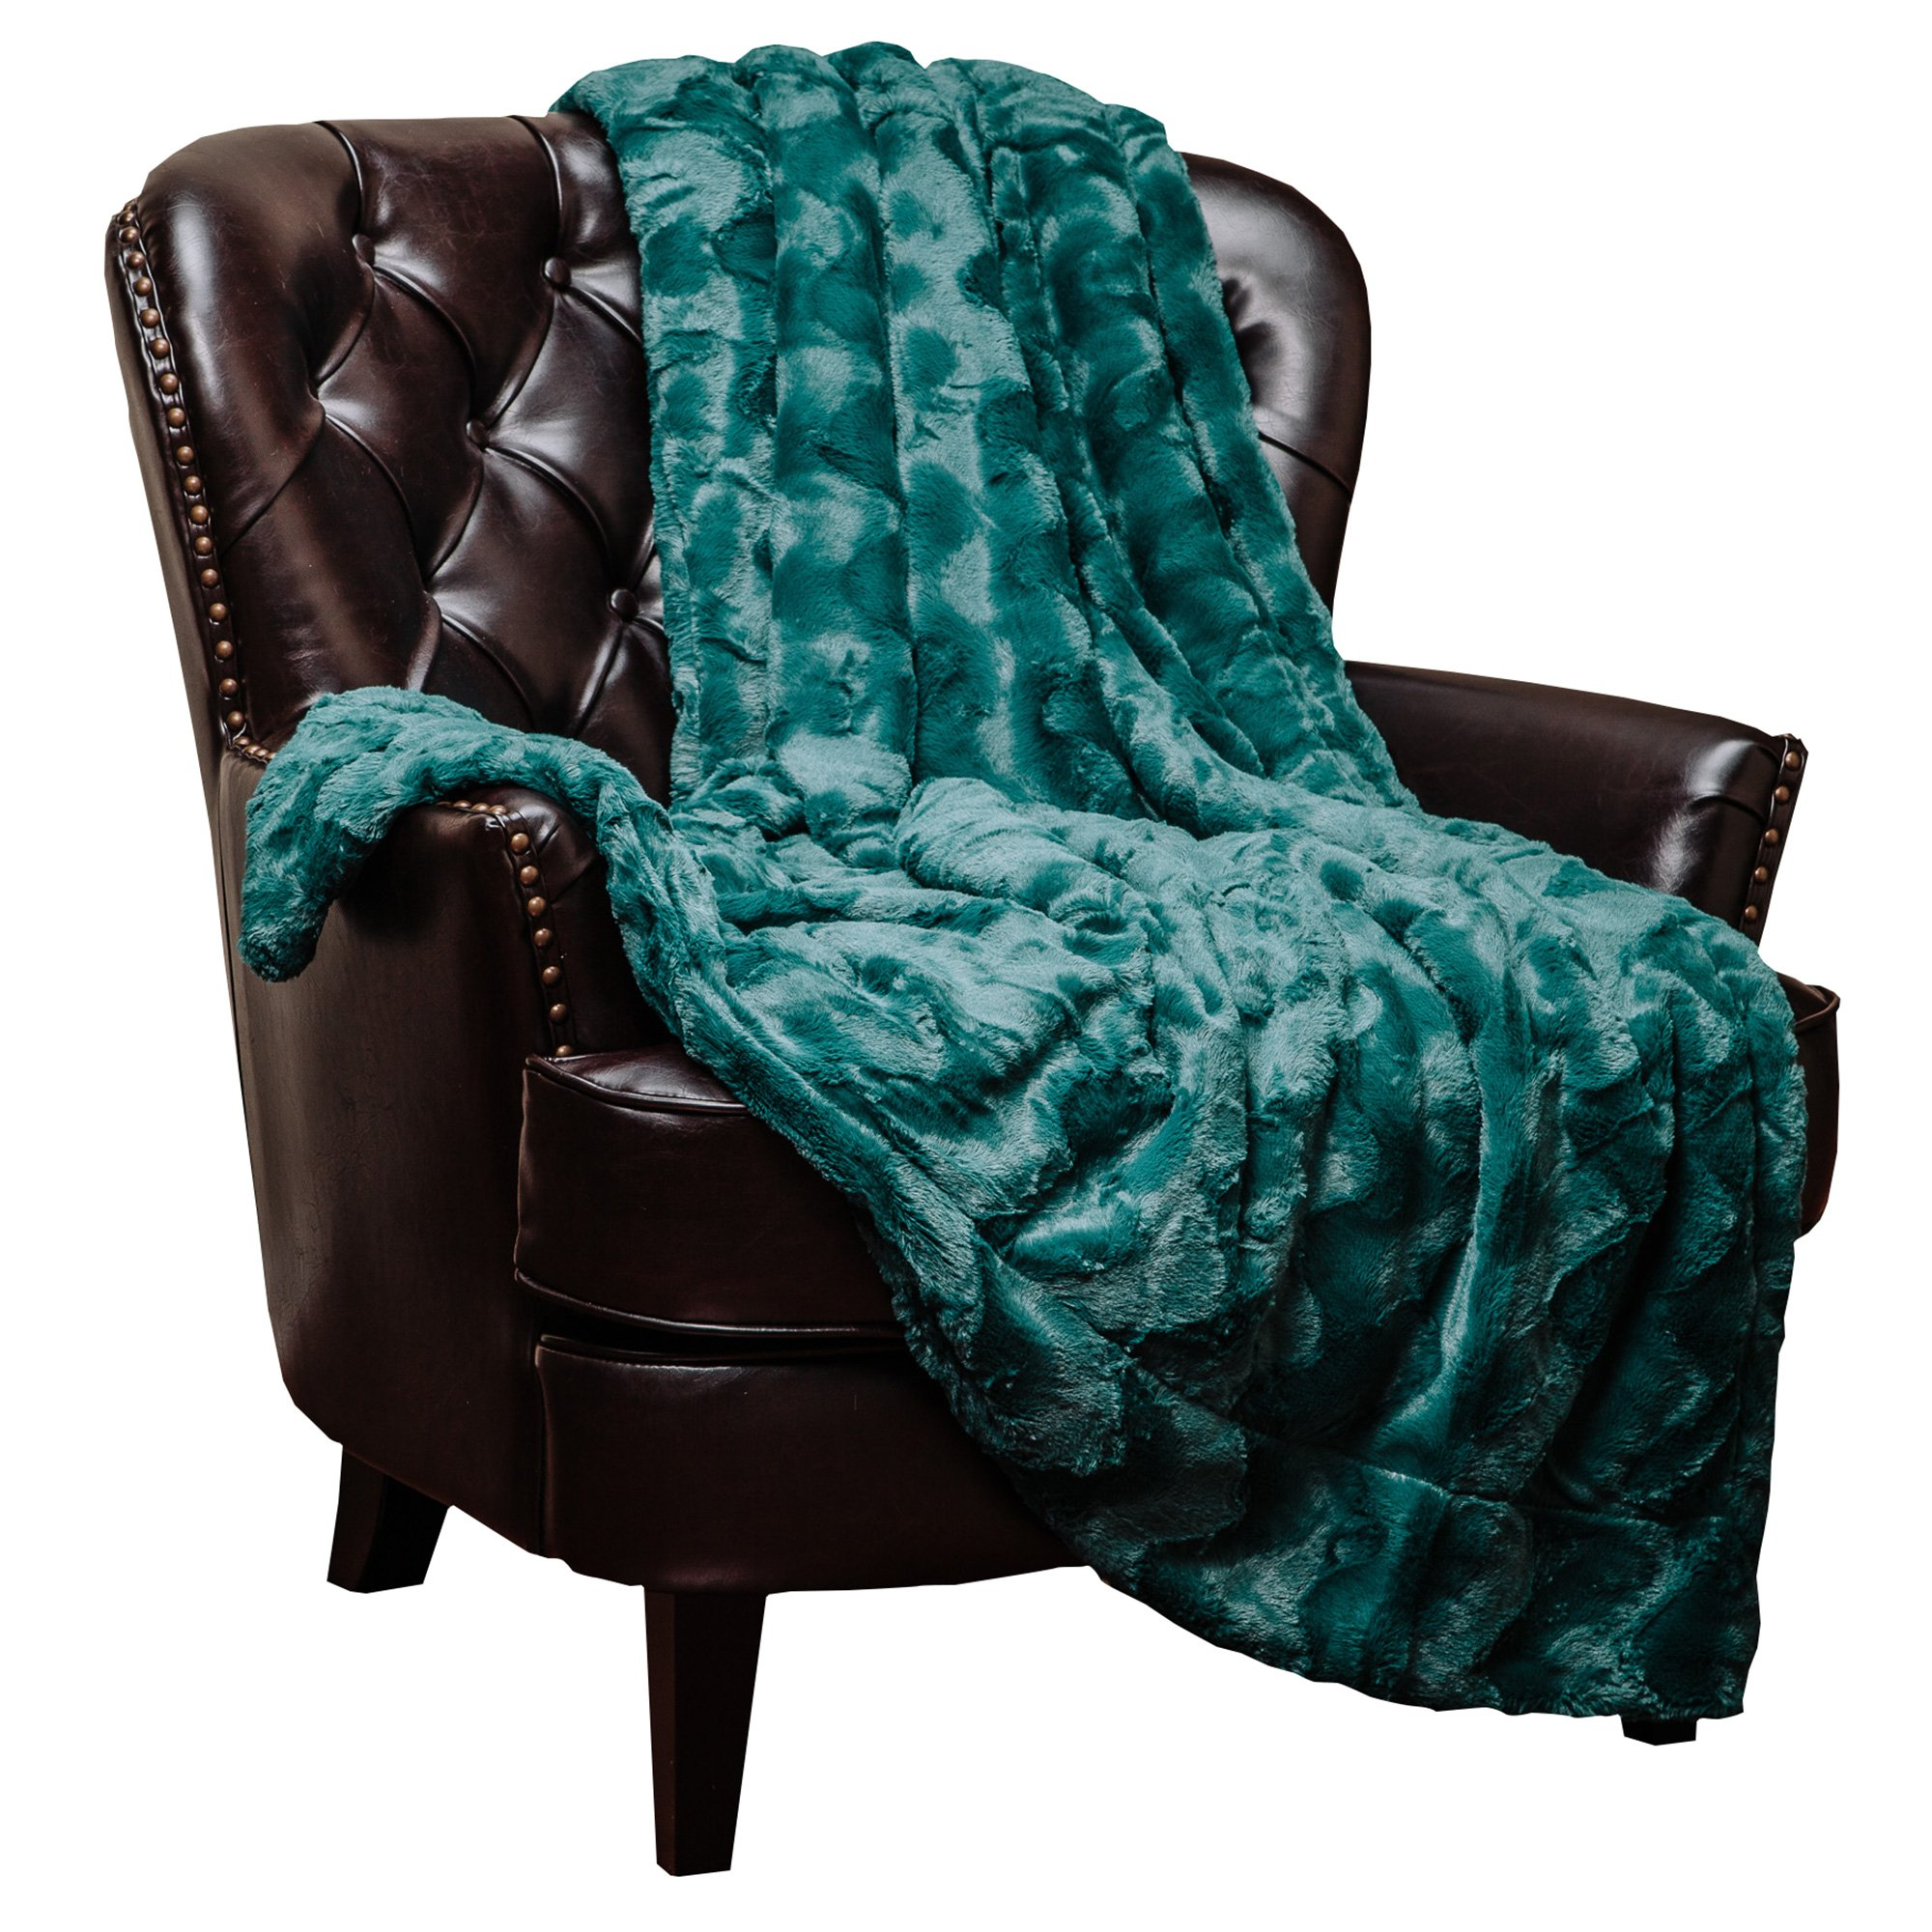 Chanasya Fur Throw Blanket for Bed Couch Chair Daybed - Soft Wave Embossed Pattern - Warm Elegant Cozy Fuzzy Fluffy Faux Fur Plush Suitable for Fall Winter Summer Spring (50'' x 65'') - Teal Blanket